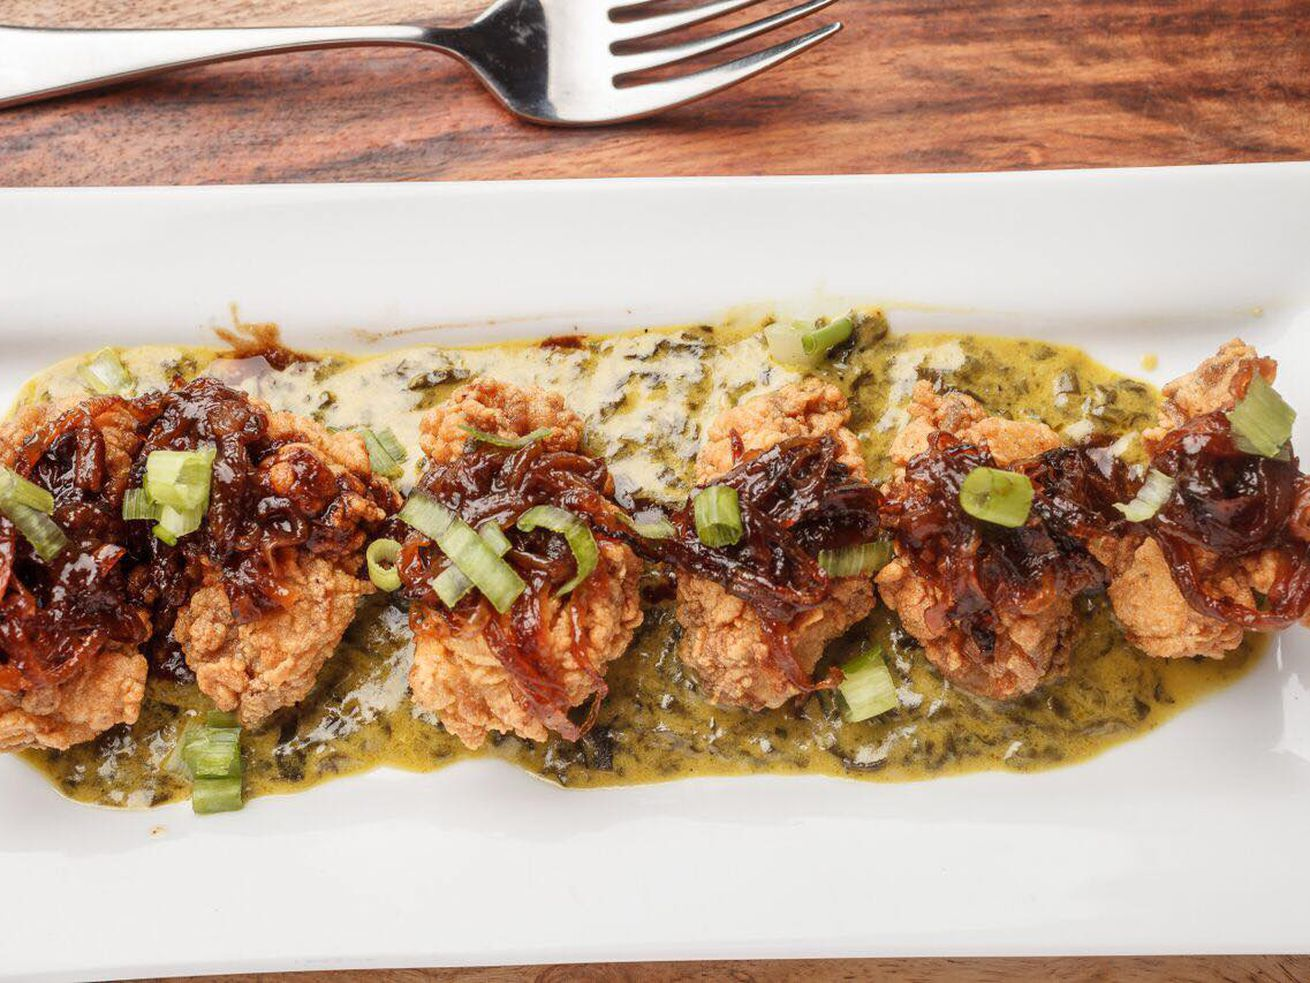 A plate of fried oysters over creamed spinach topped with scallions and caramelized onions